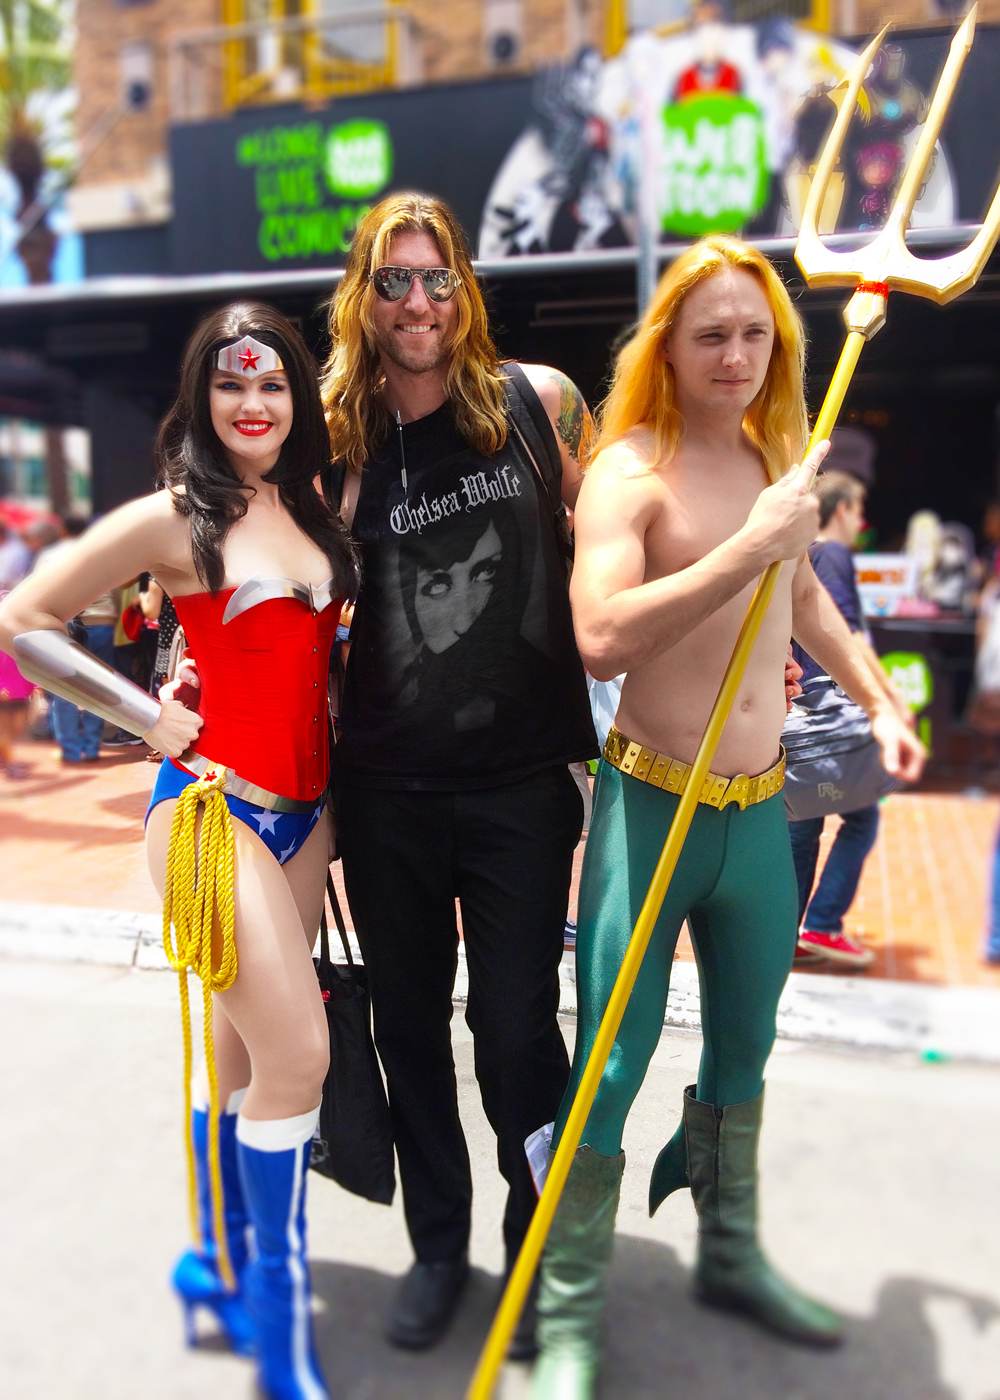 """COMIC-CON 2015 Edition: Wonder Woman, THOR [me] and Aquaman. Contrary to popular Norse mythology, THOR actually wears a CHELSEA WOLFE shirt [beautiful gothic musician high-priestess of folk] and NOT cape and wears aviator sunglasses to protect """"his"""" eyes being the GOD of THUNDER and all…….."""